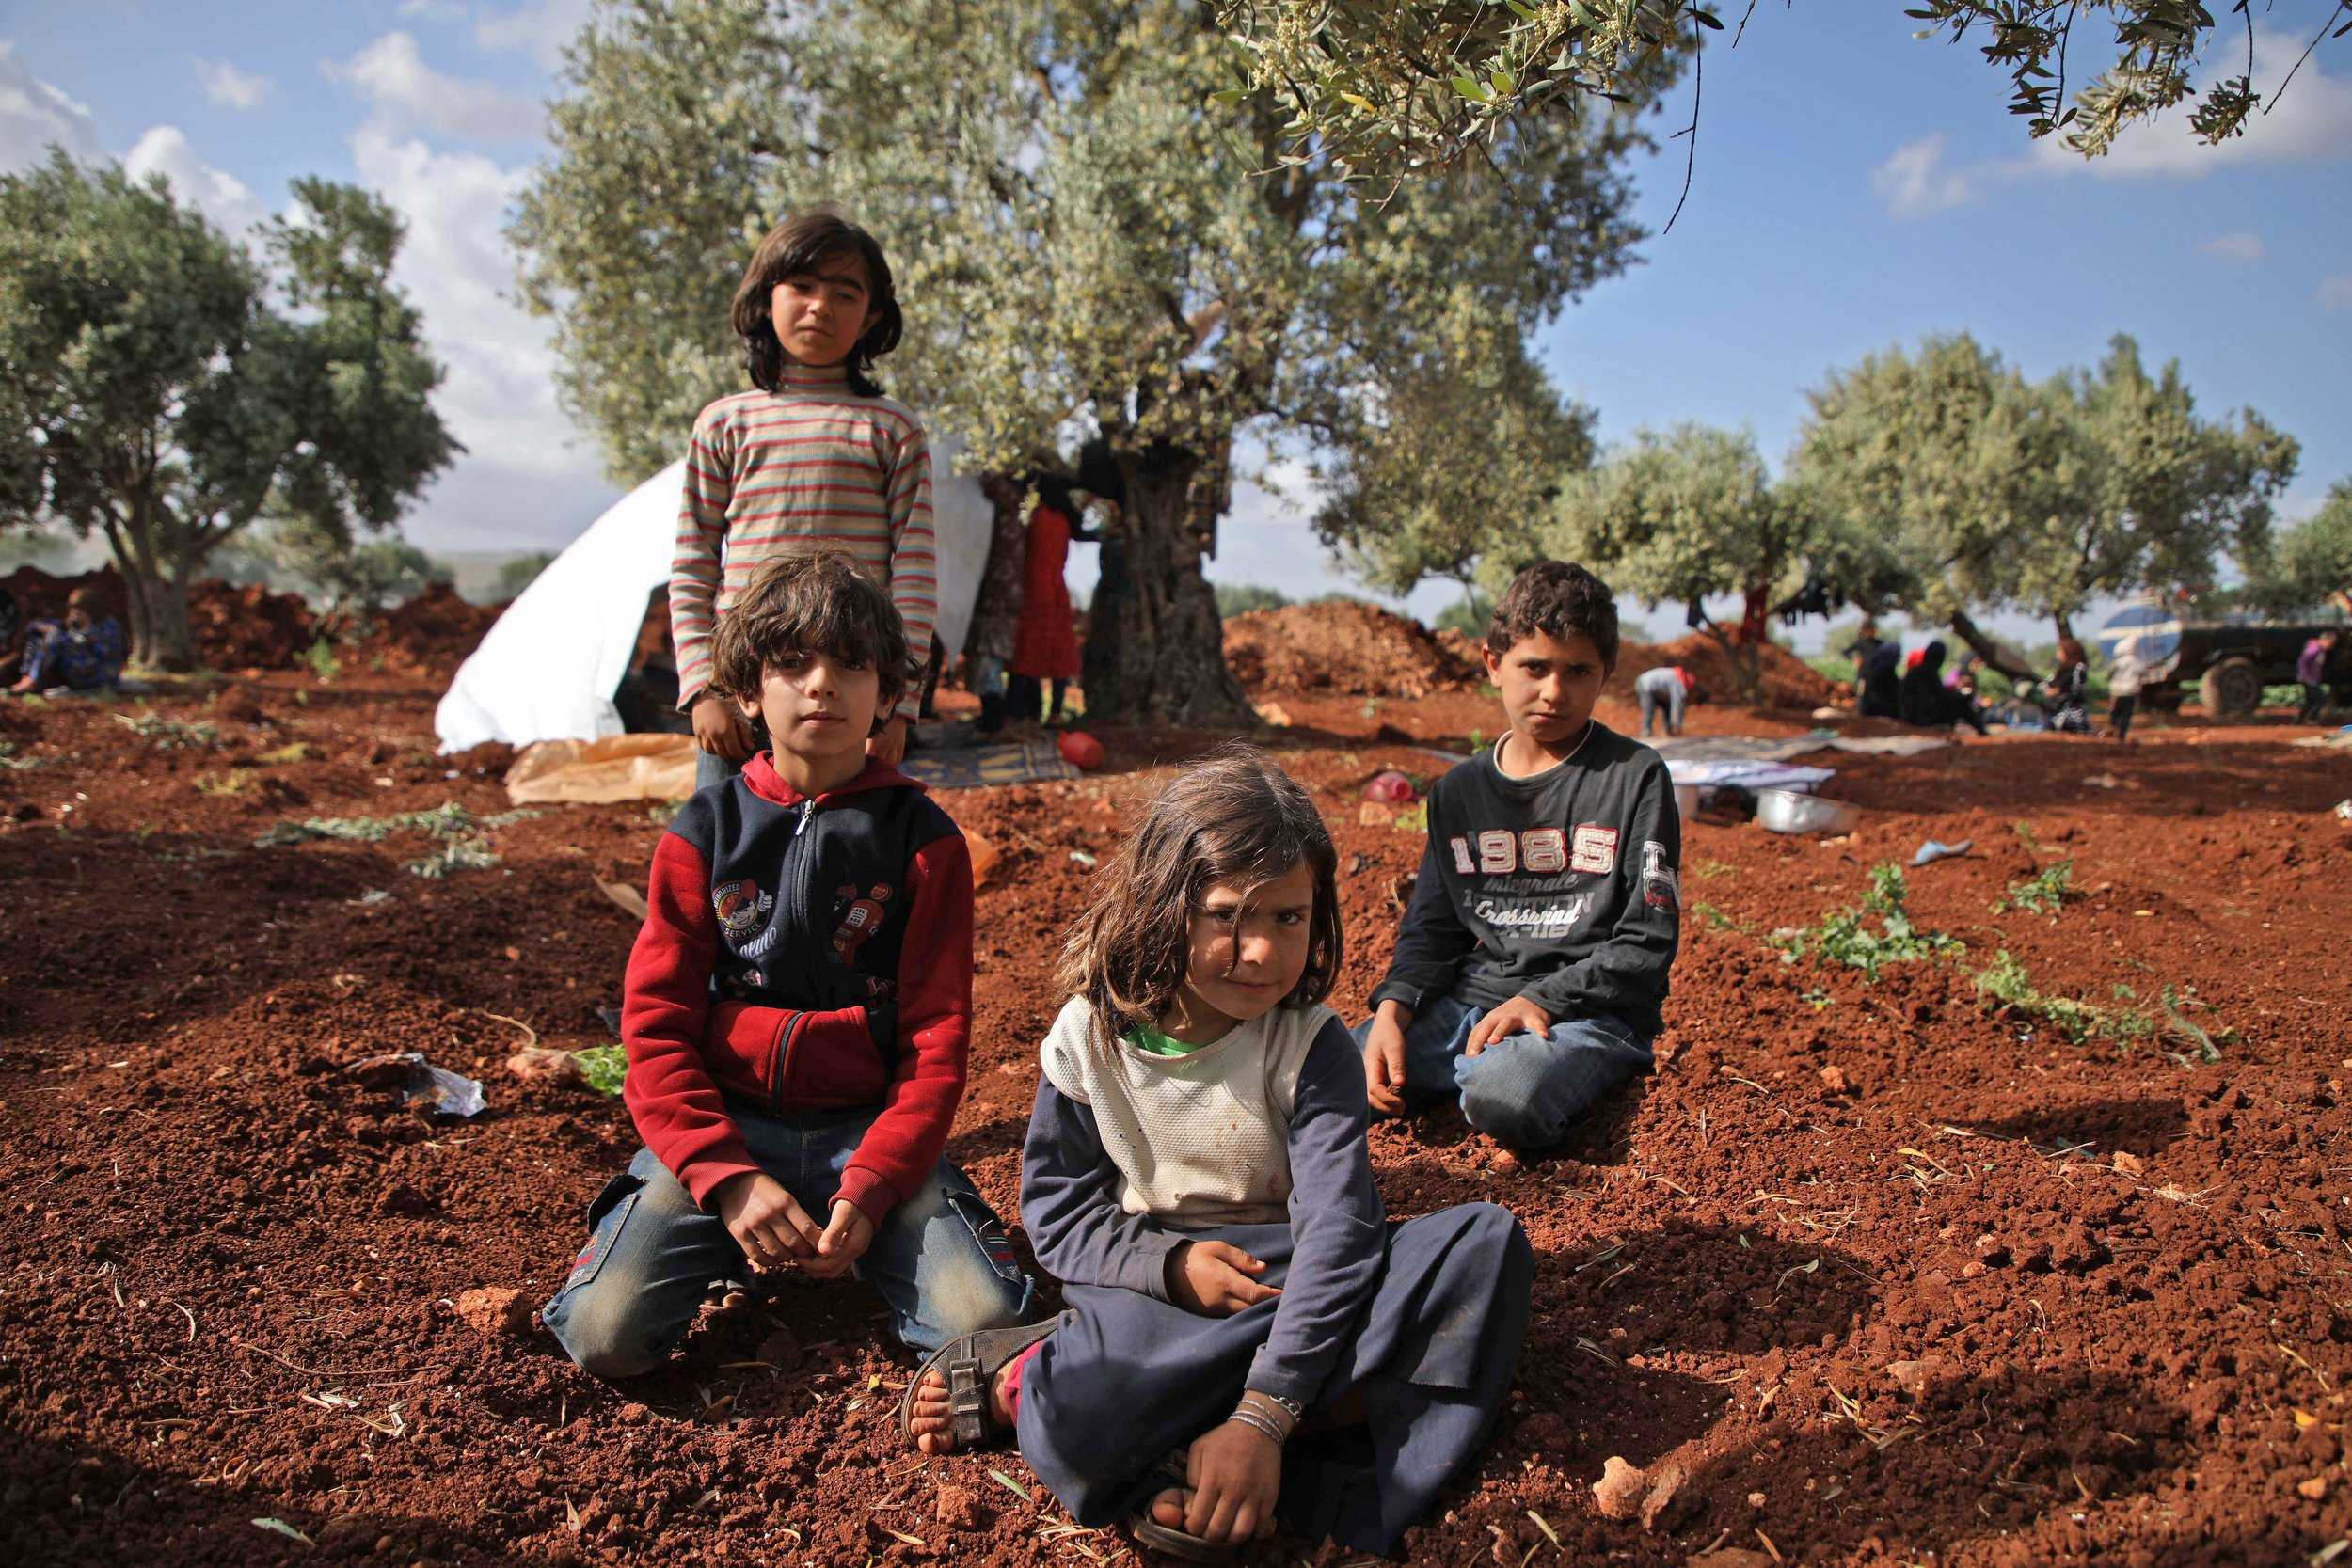 Displaced Syrian children living in an olive grove in Atme, Syria. Photo Credit: AAREF WATAD/AFP/Getty Images.